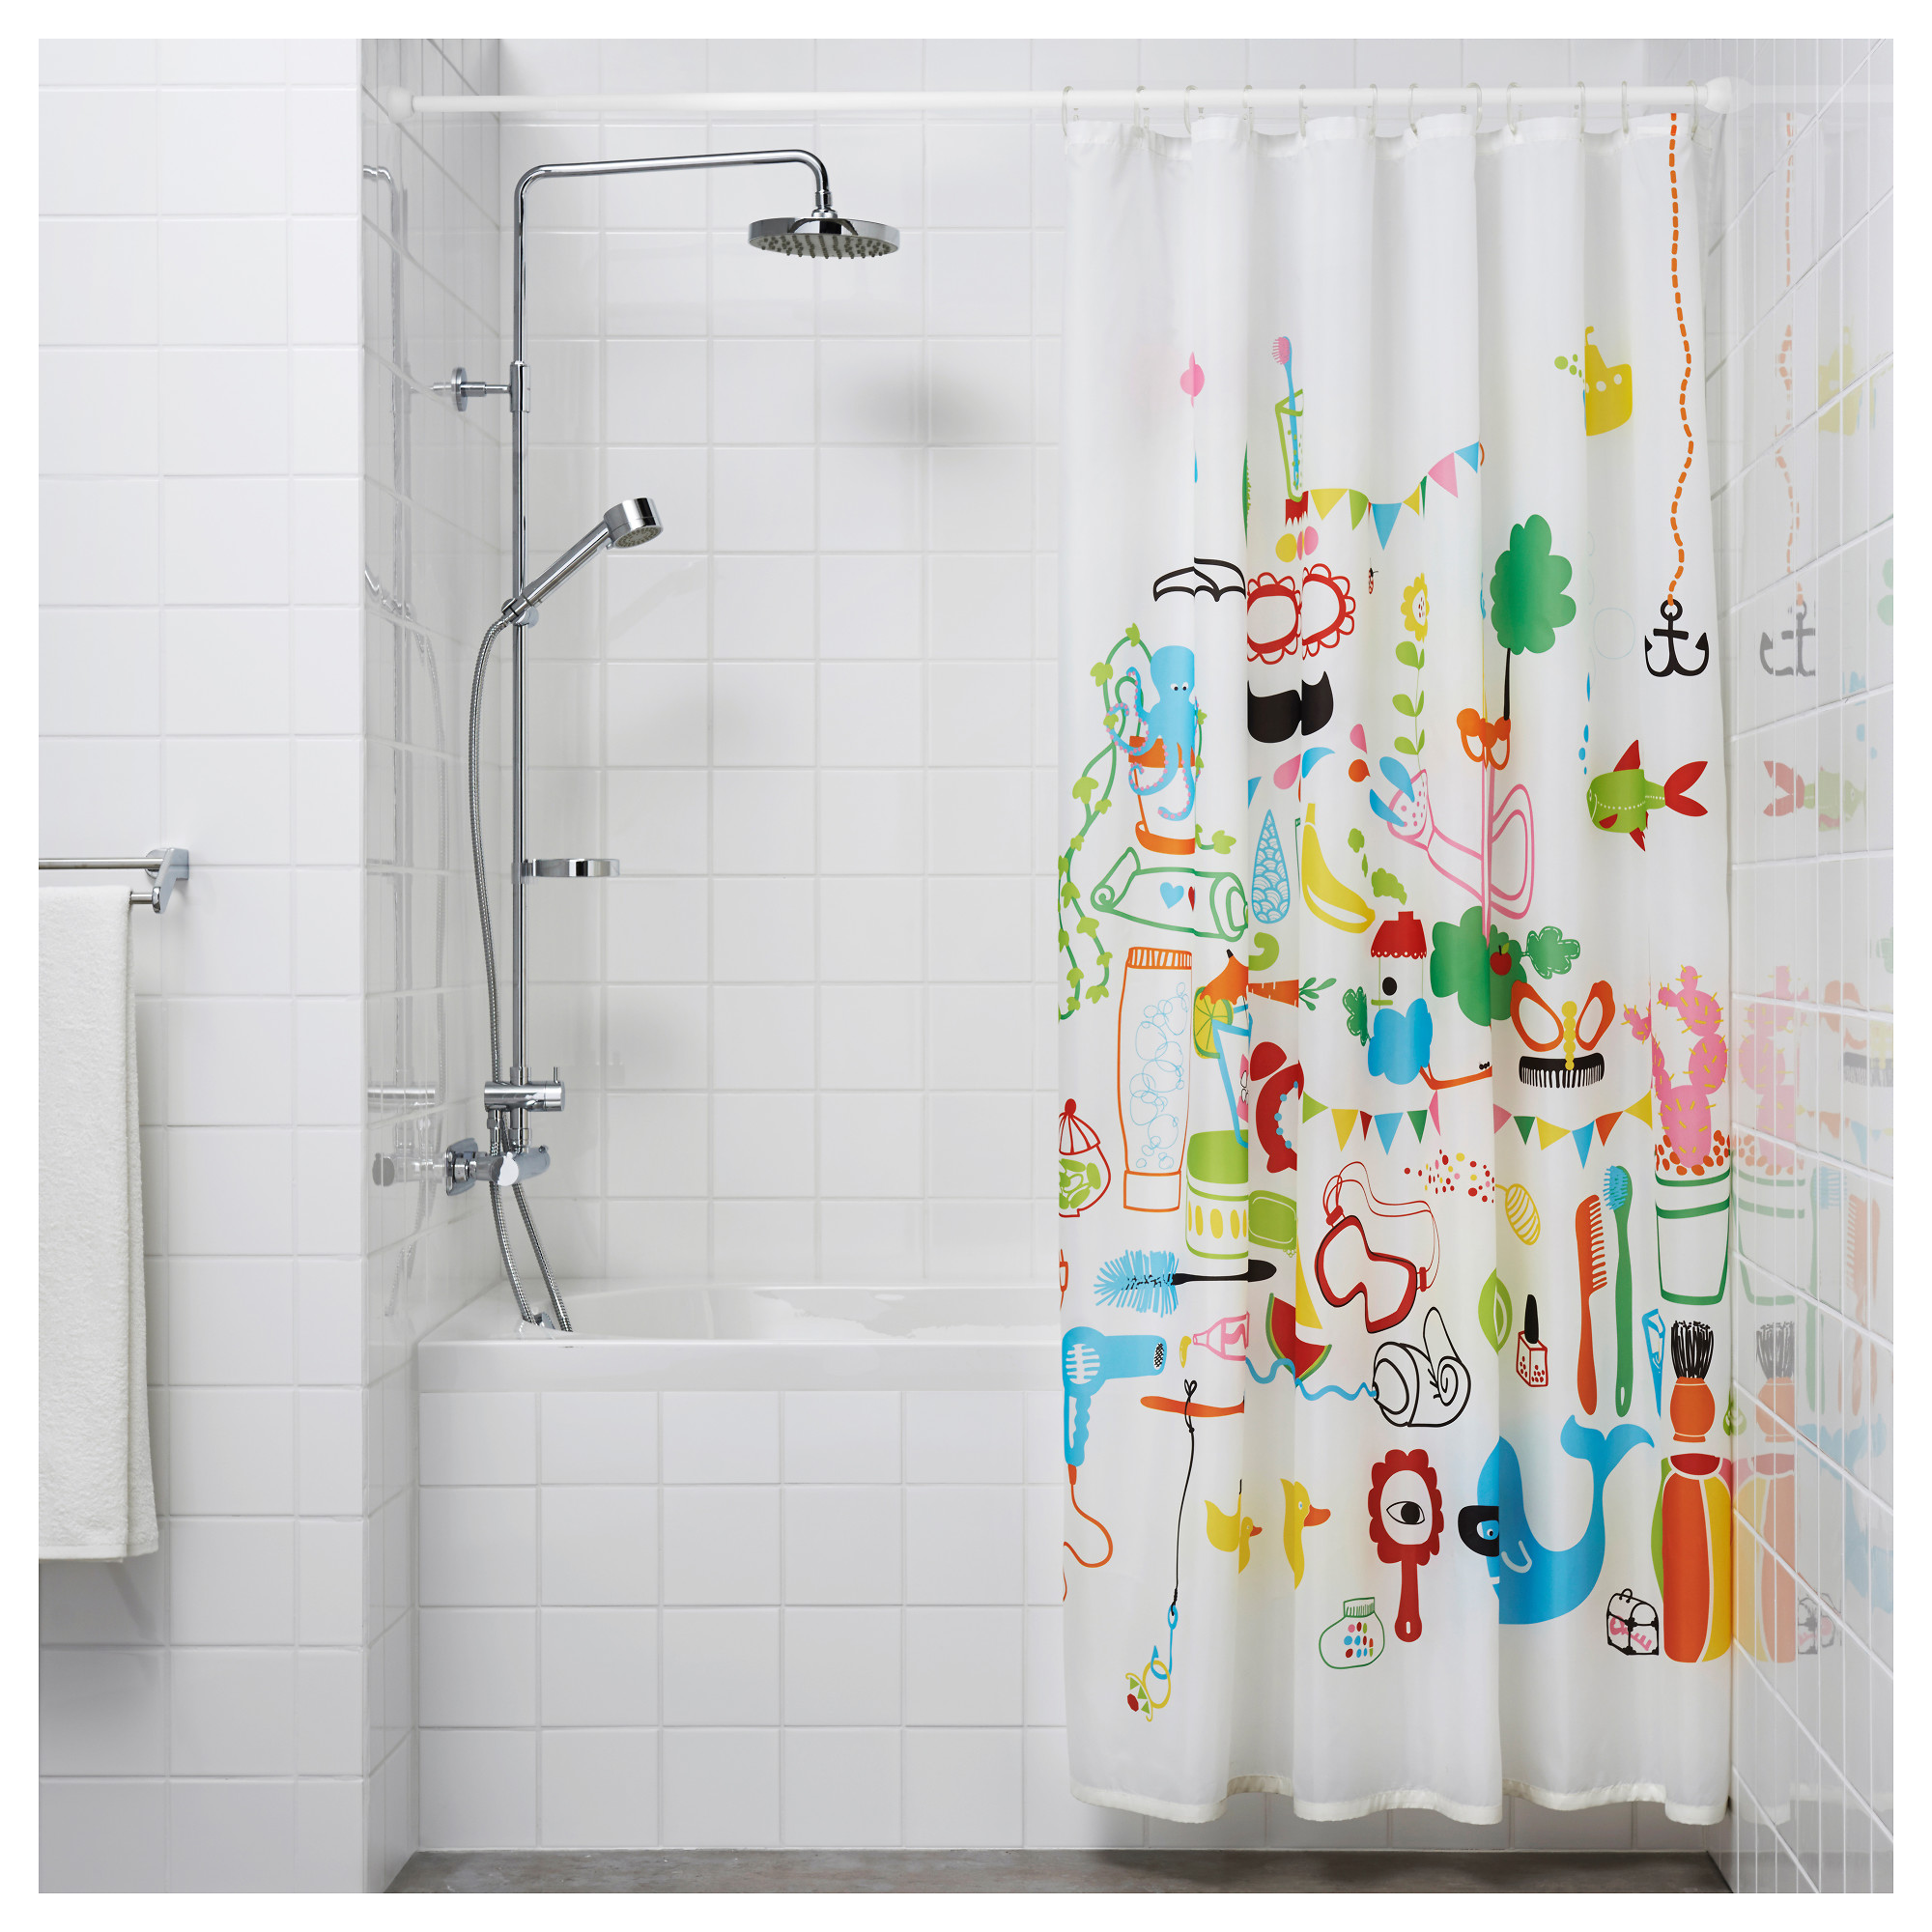 botaren shower curtain rod ikea - Ikea Shower Curtains